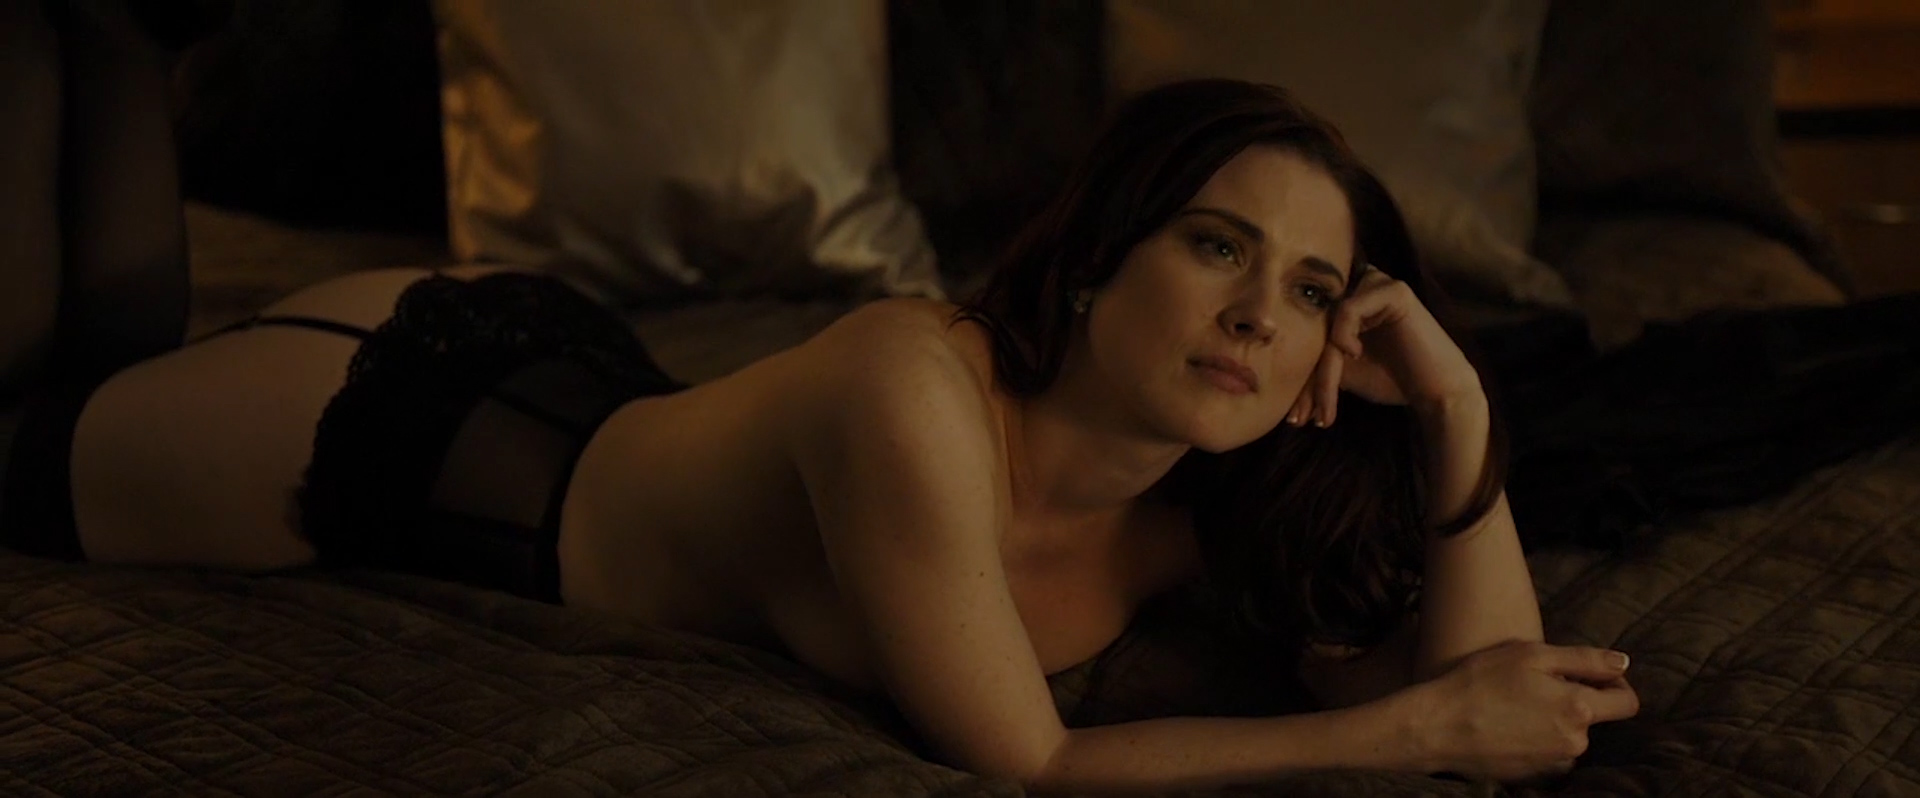 Lena Headey nude sex Alexandra Breckenridge nude others nude too – Zipper  (2015) hd1080p Web-Dl